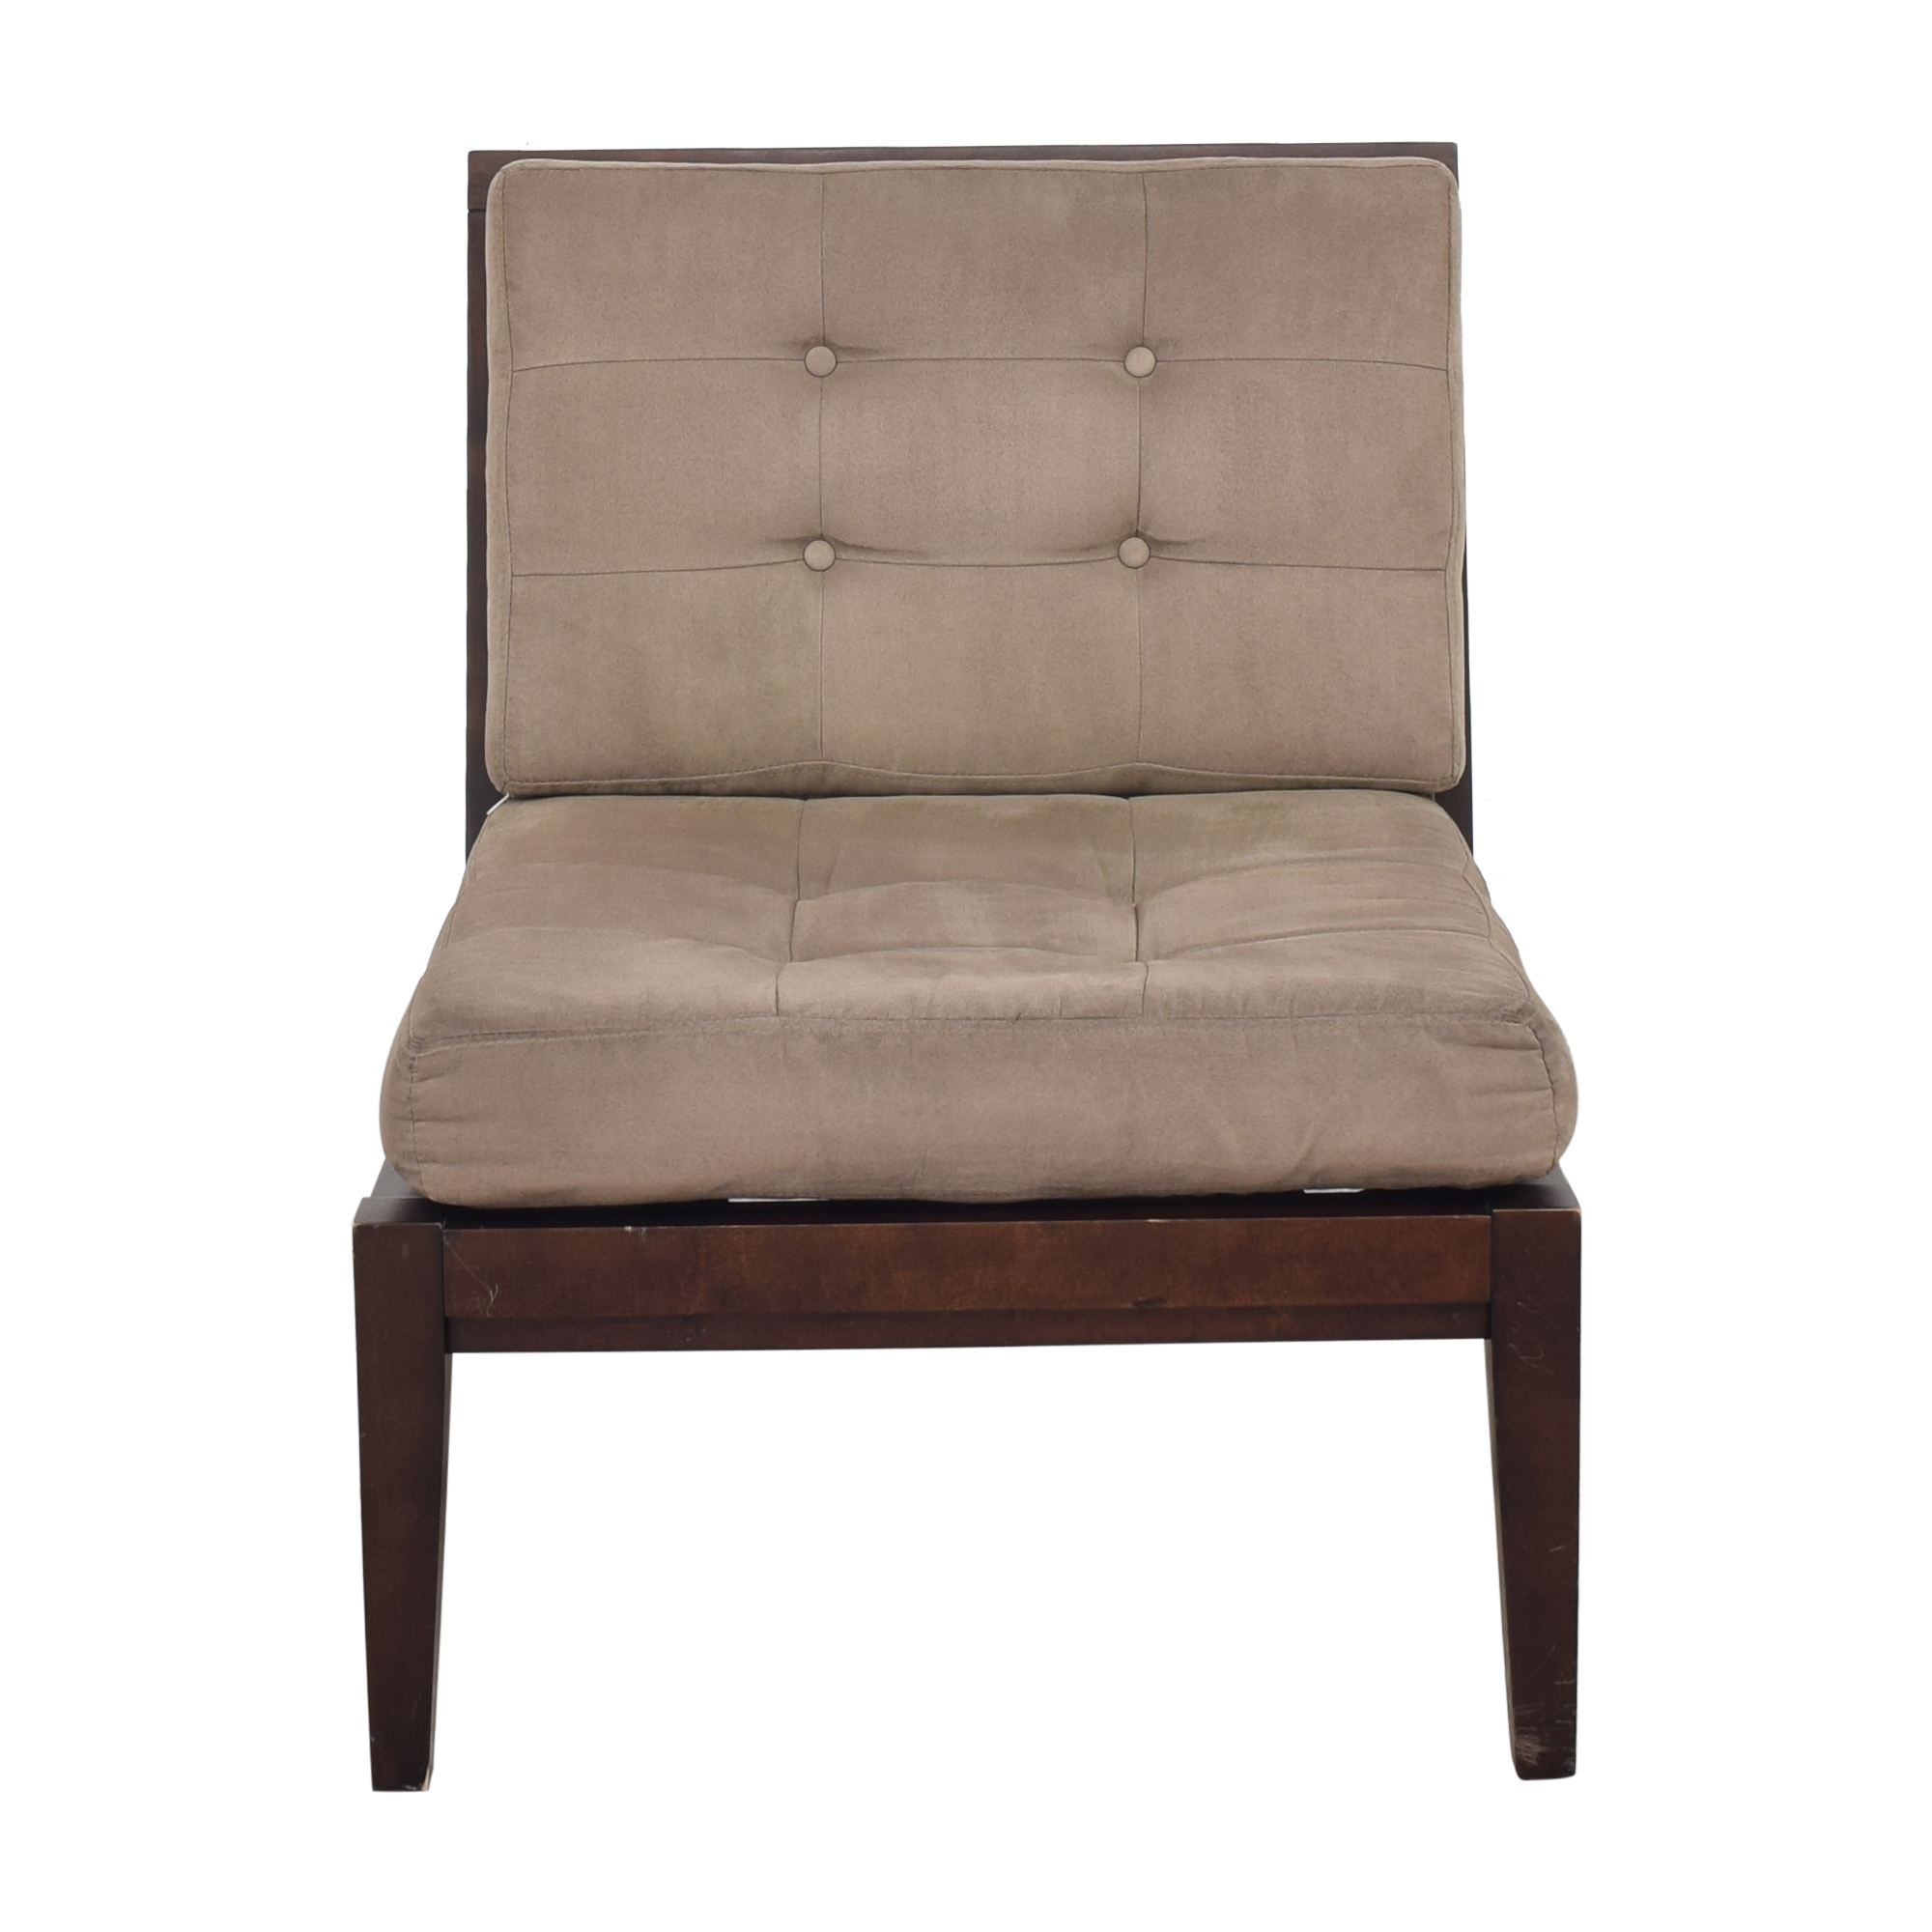 Crate & Barrel Crate & Barrel Armless Lounge Chair discount